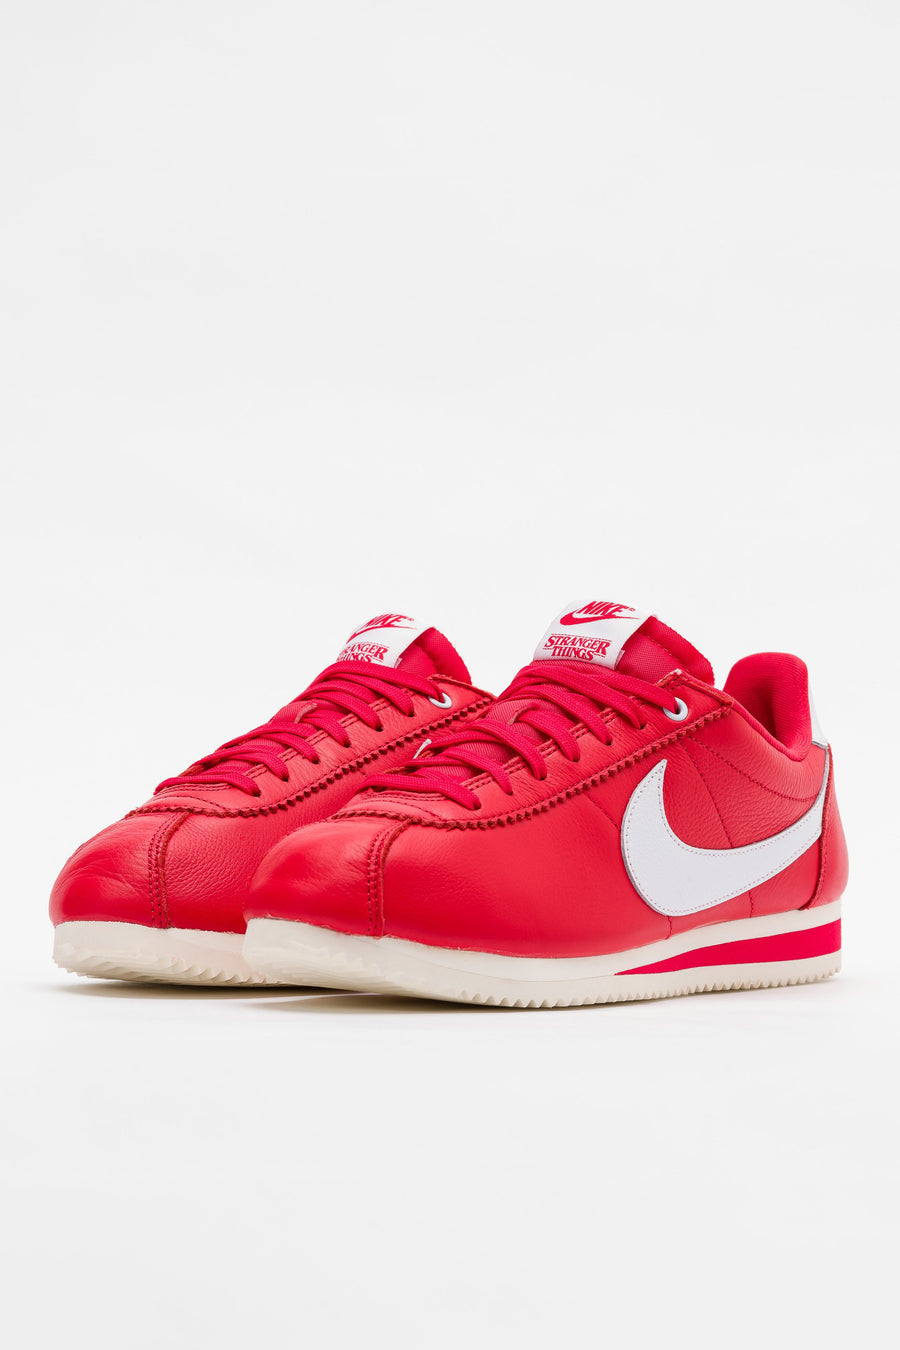 Nike Stranger Things Classic Cortez (4th of July) in Red/White - Notre